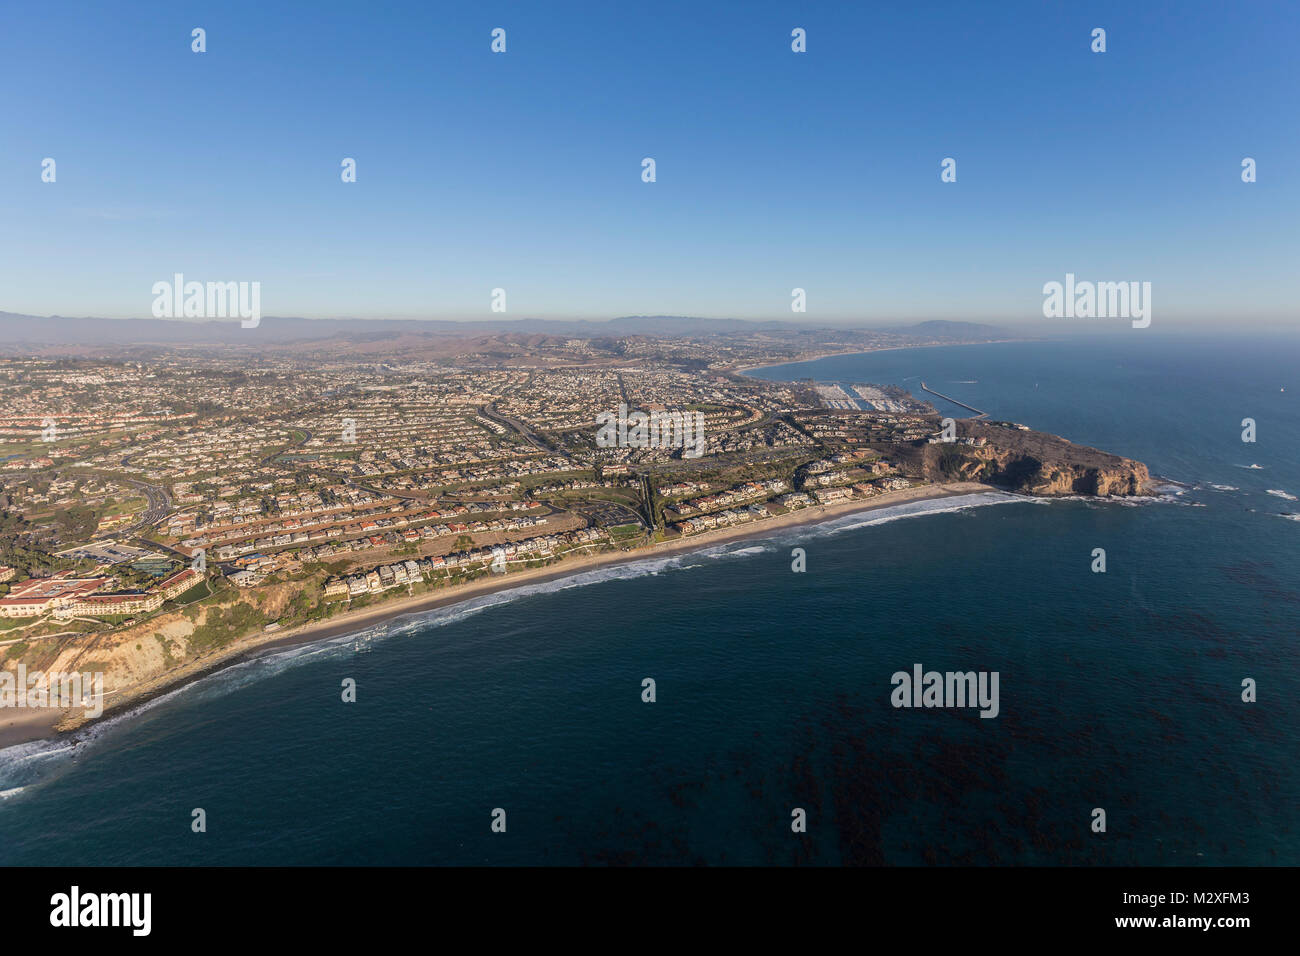 Aerial view of Dana Point in Orange County on the California coast. Stock Photo